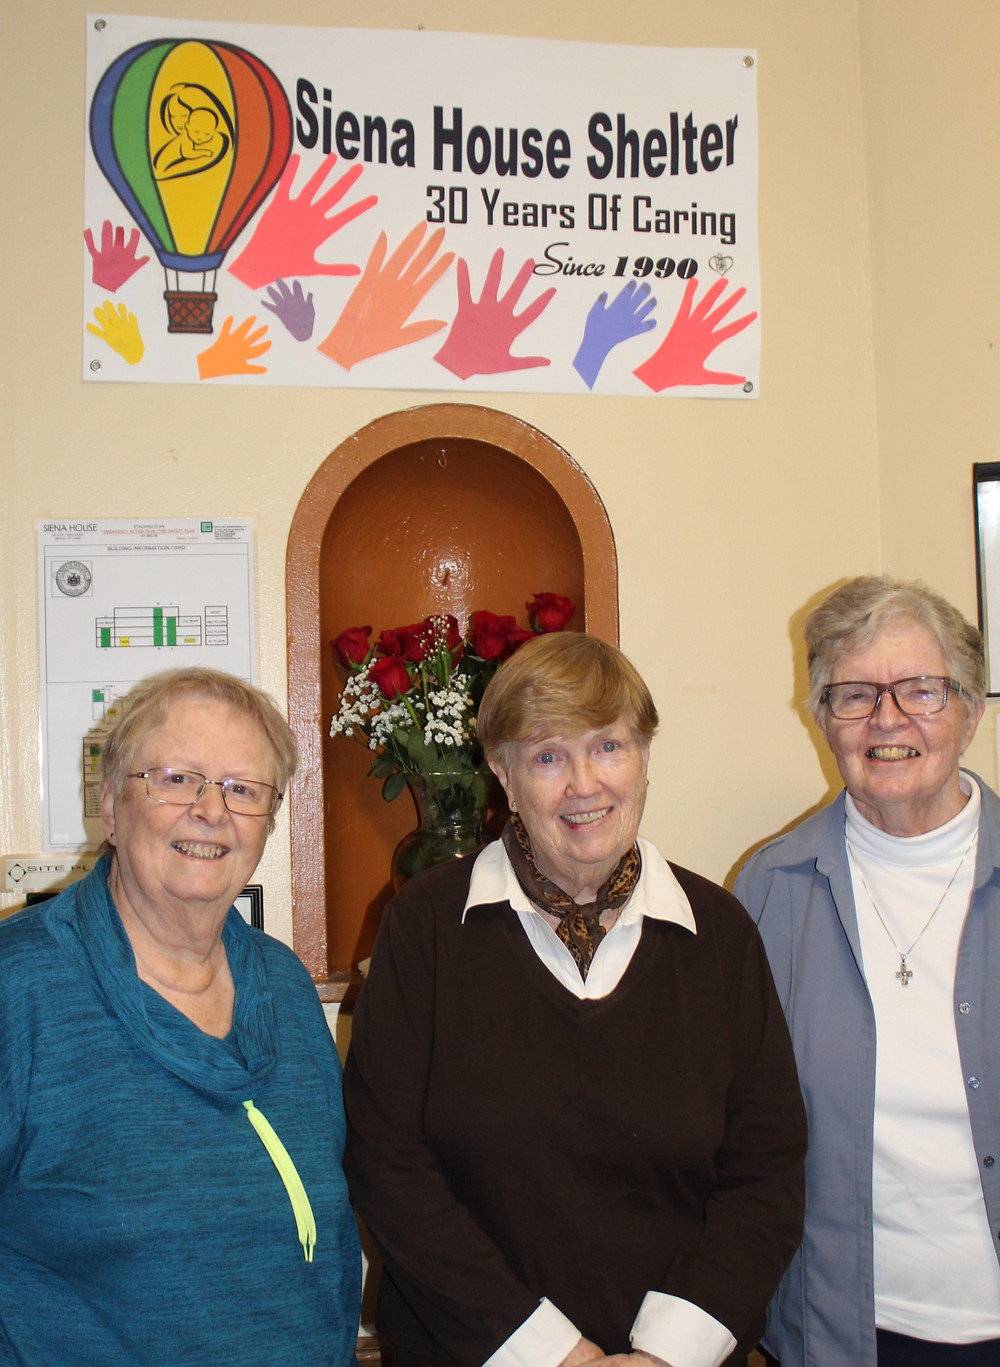 Sisters Cely Byrnes, Joan Marie McKinney, and Mary Doris at Siena House.